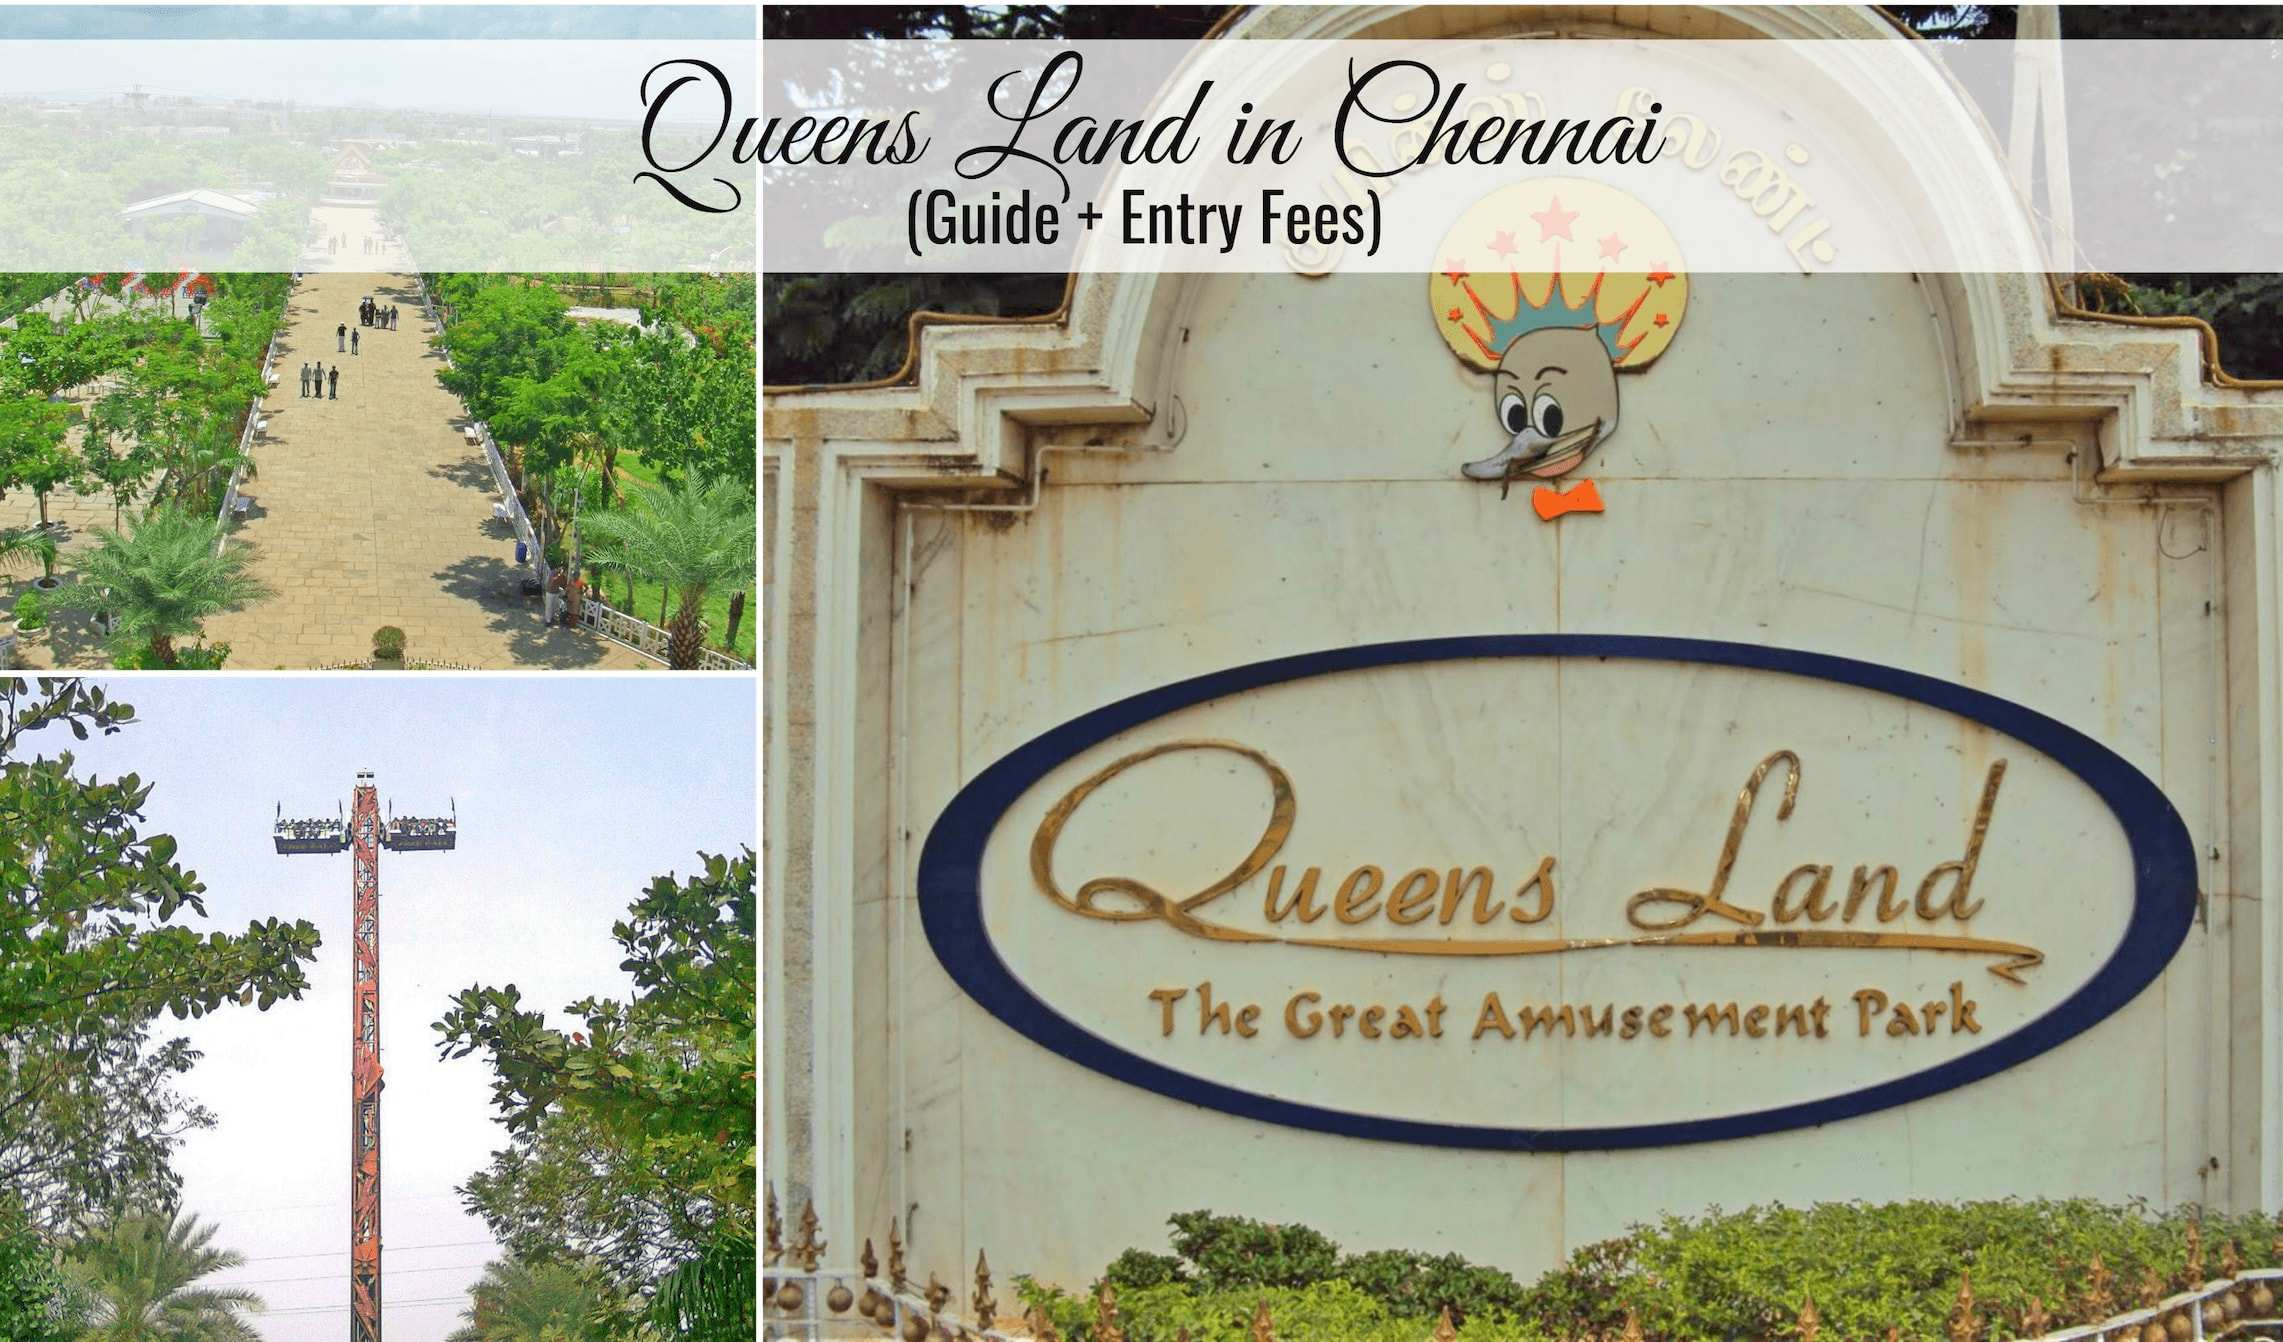 Queens-land-amusement-park-chennai.jpg